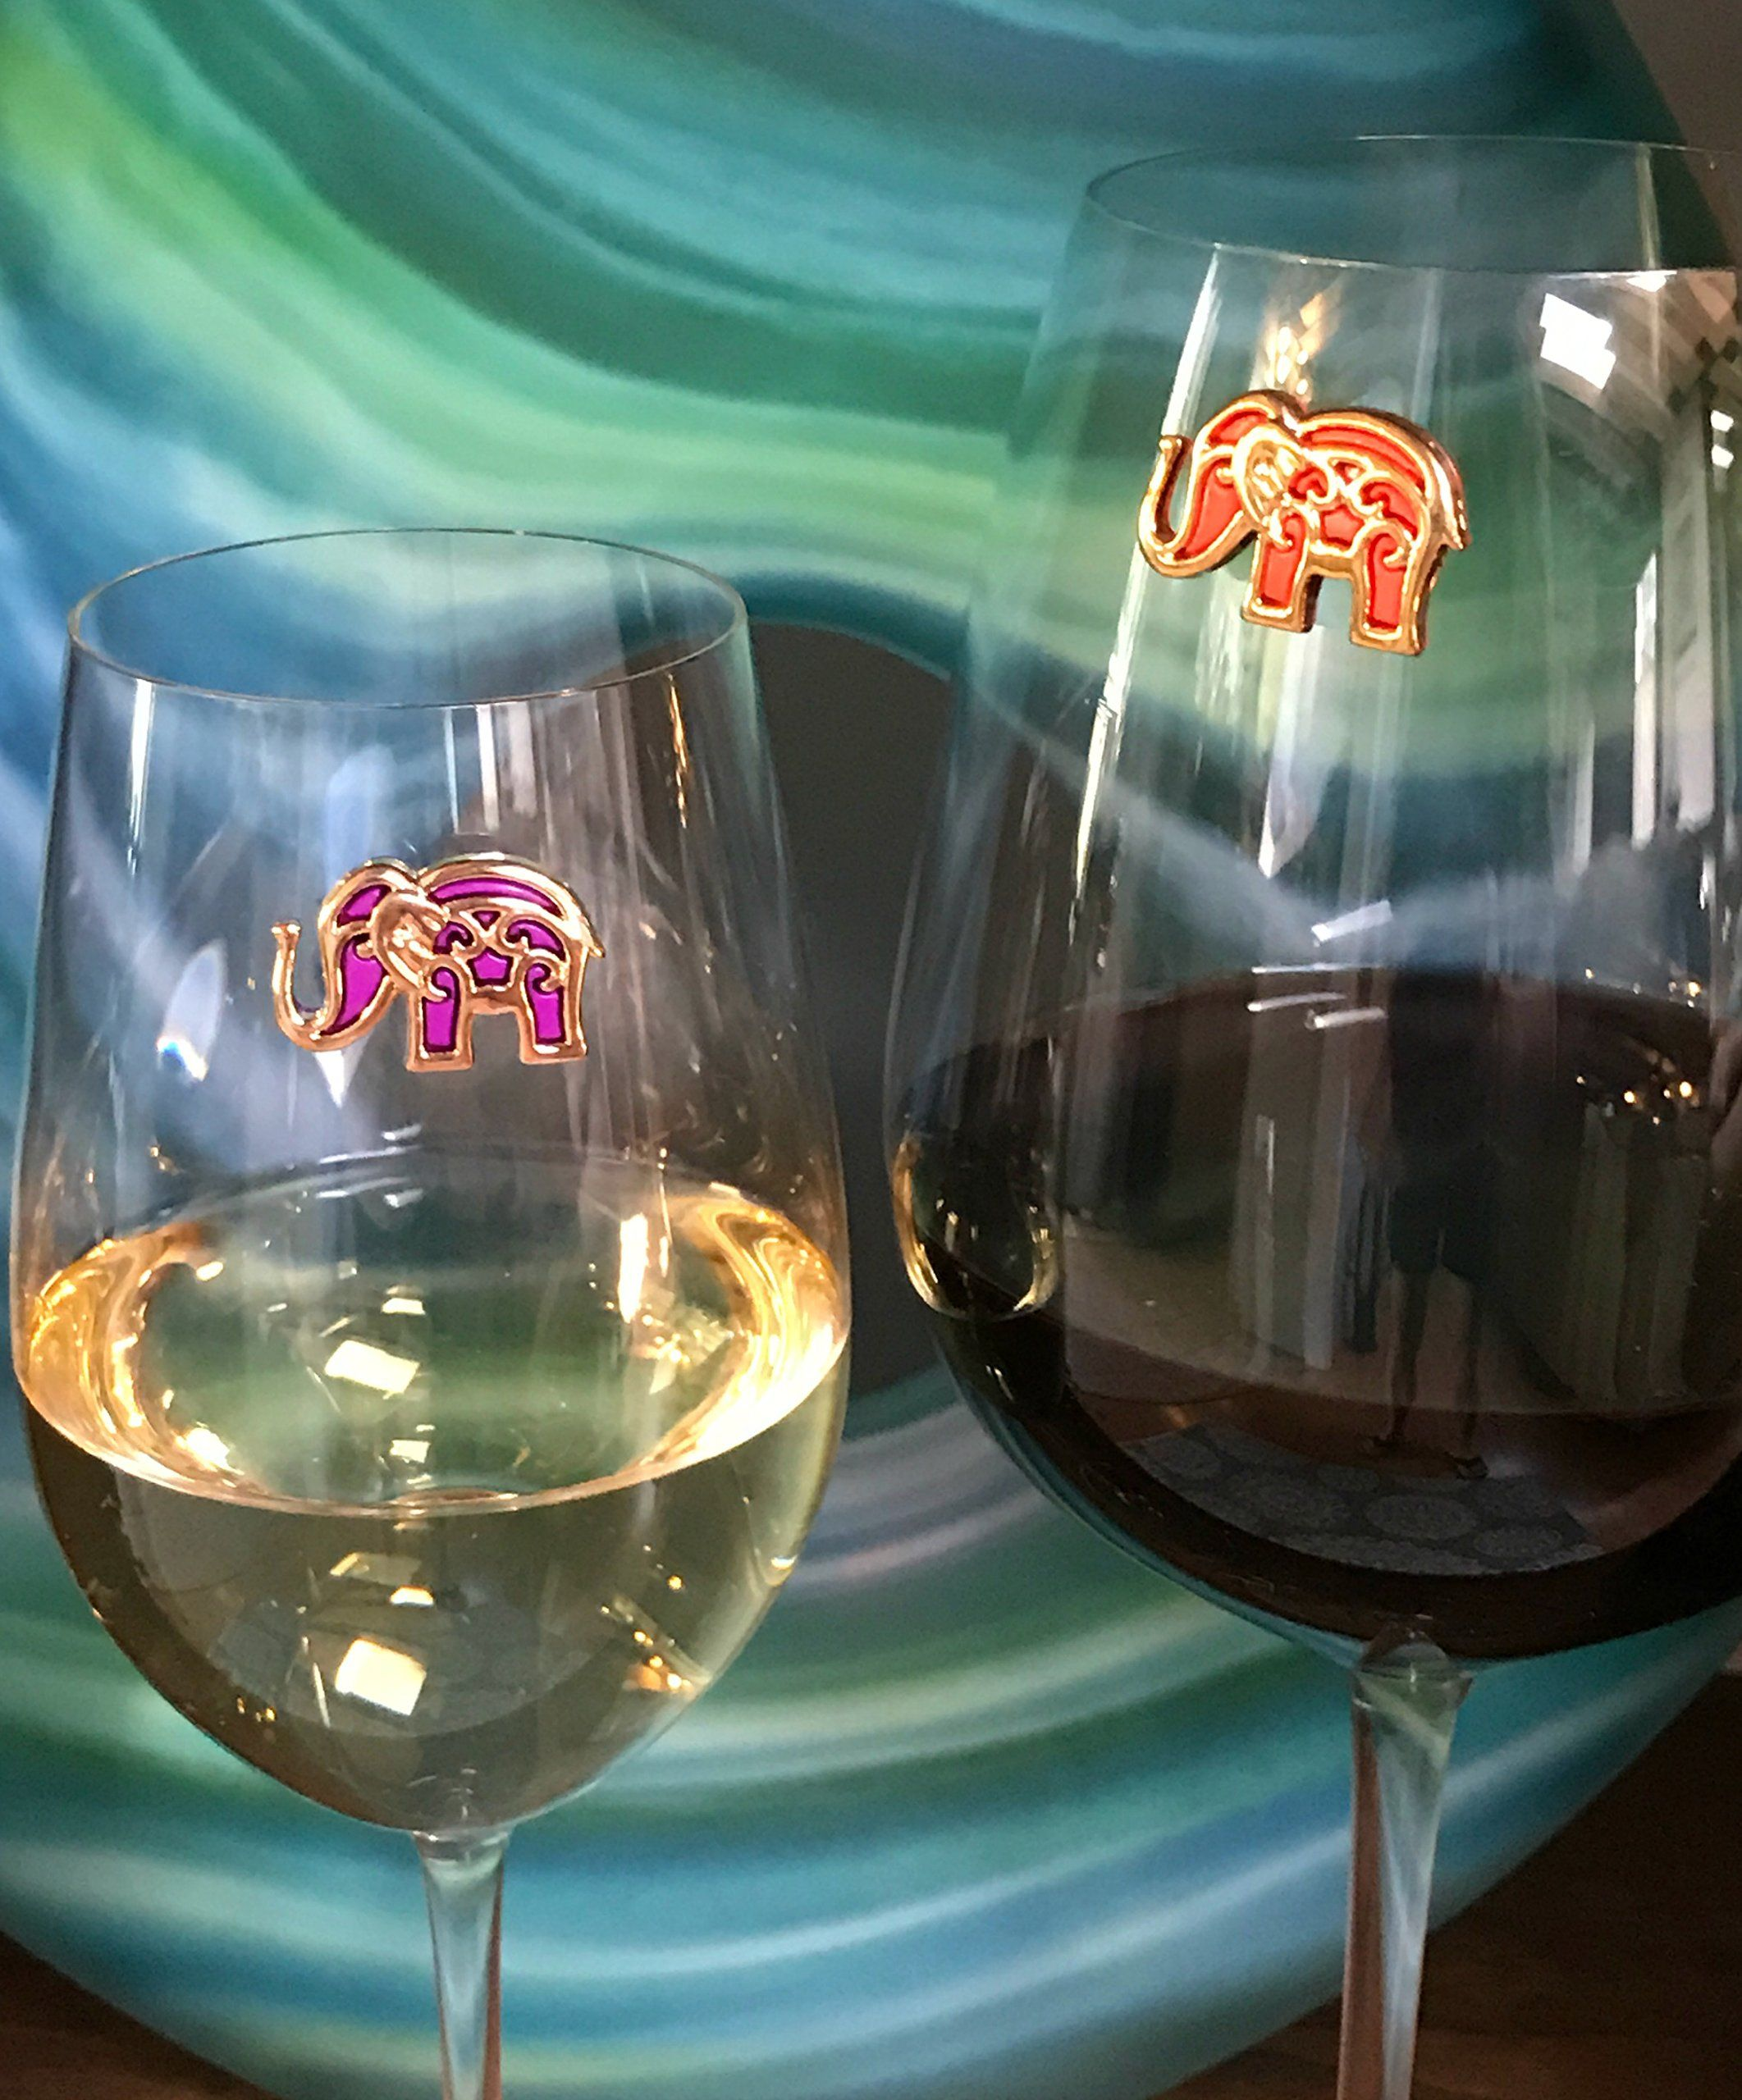 Wine Charms For Glasses Magnetic Elephant Drink Markers Set Of 6 Perfect For Stemless Glasses By Simply Charmed Details Drink Marker Wine Charms Markers Set